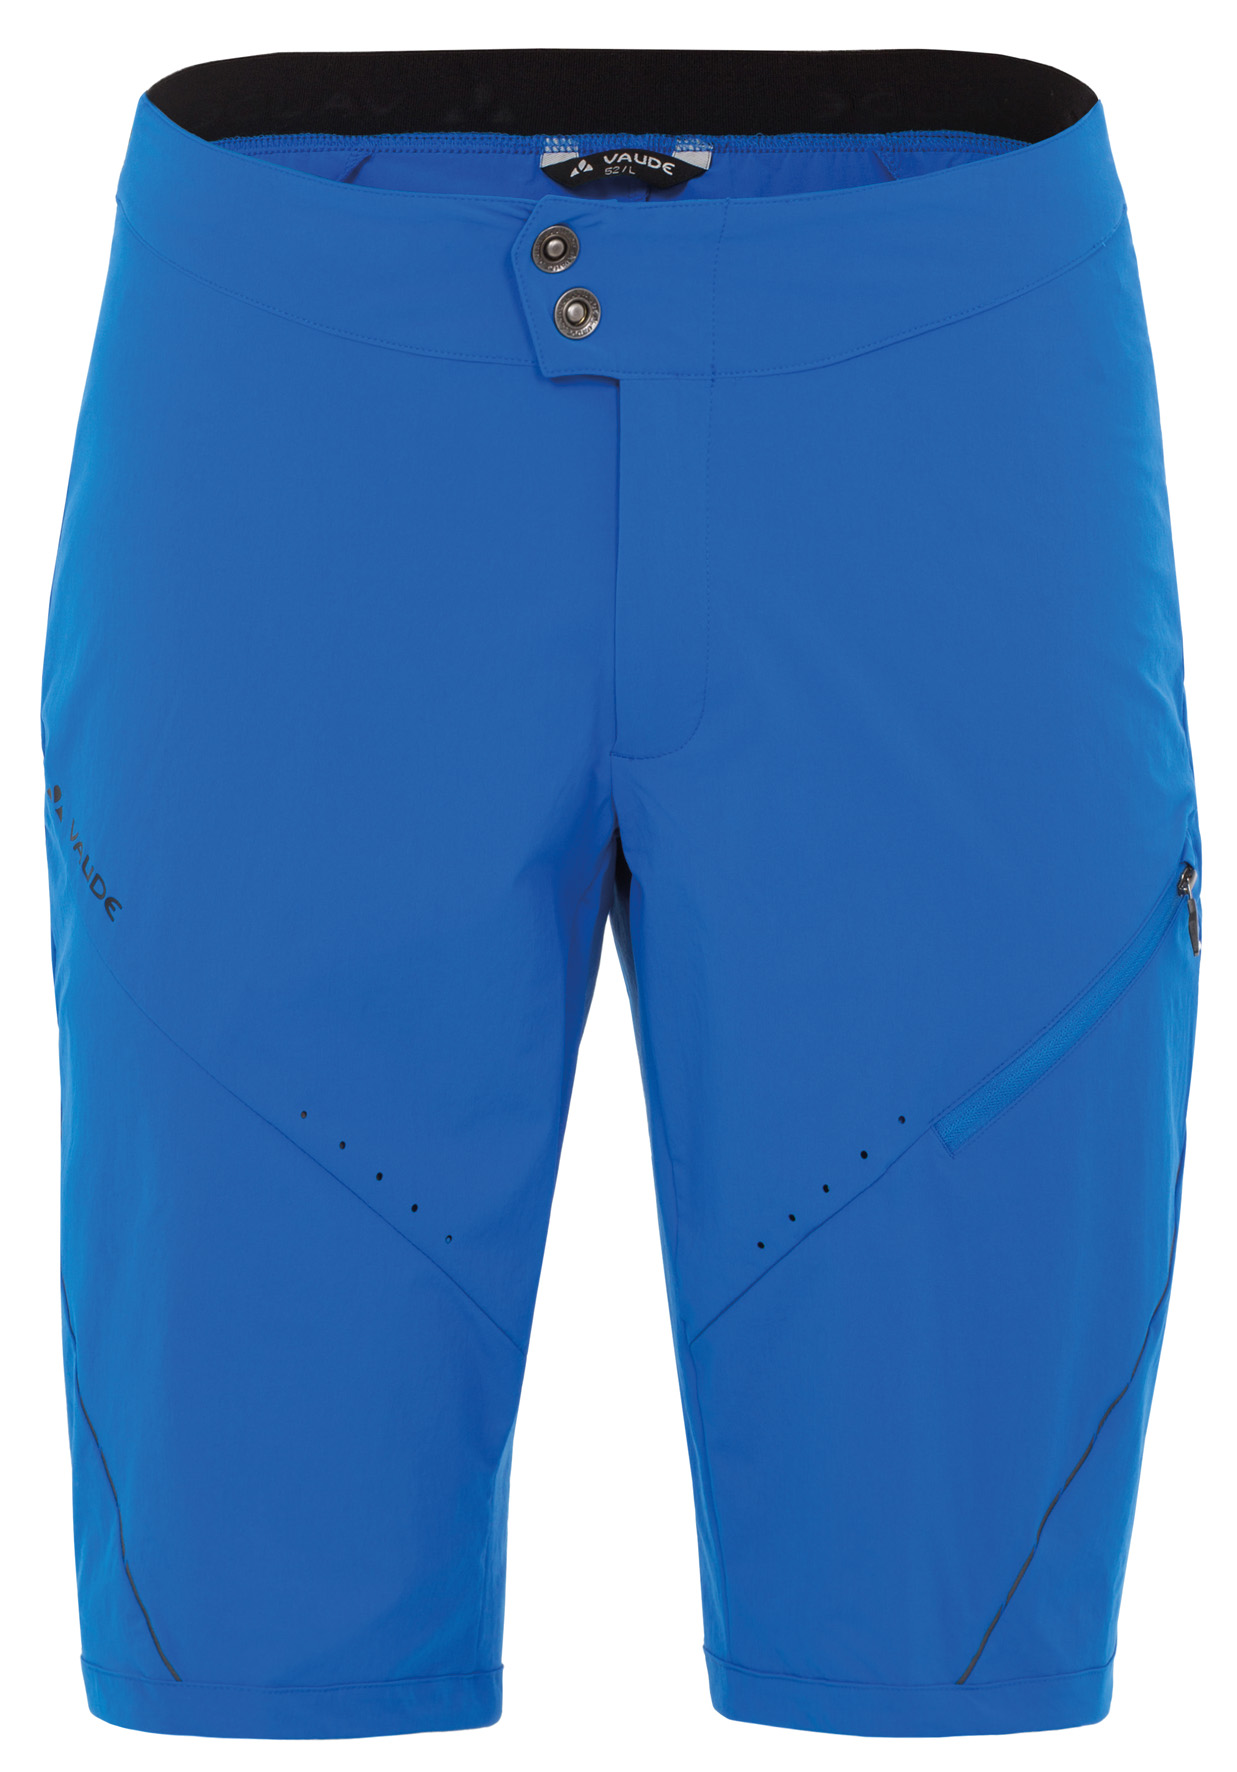 Men´s Topa Shorts hydro blue Größe S - schneider-sports